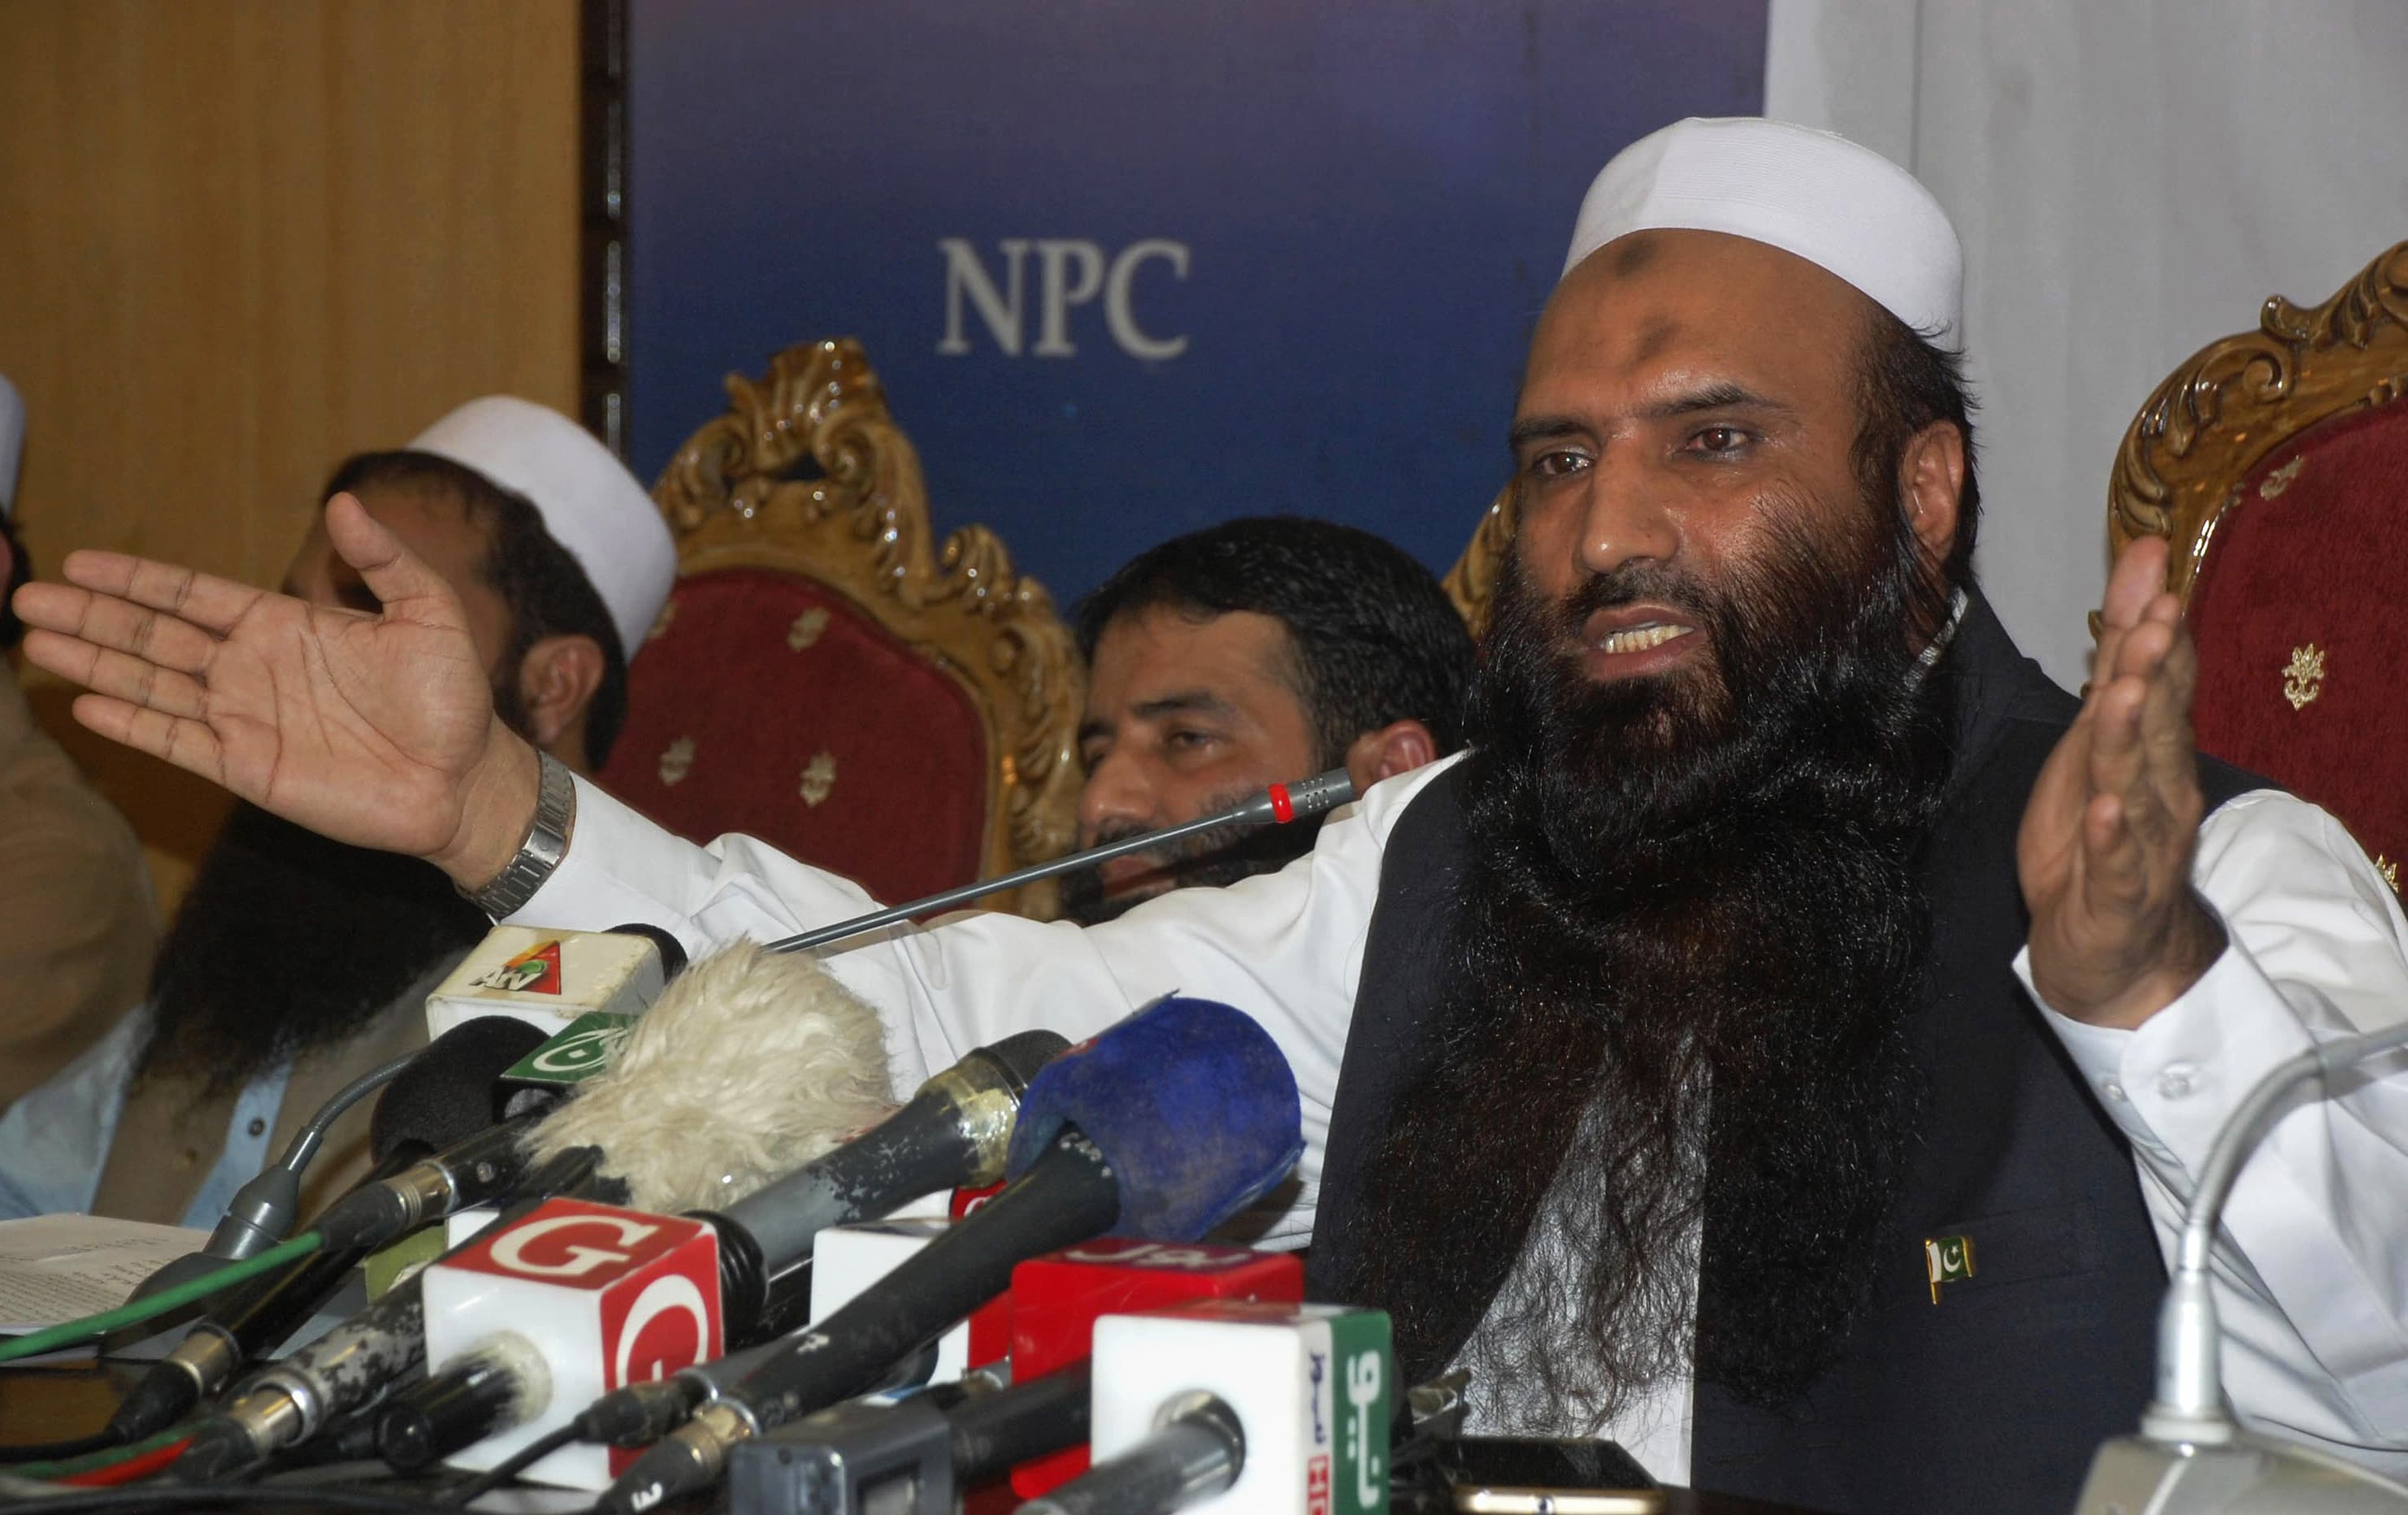 Saifullah Khalid, president of the newly-formed Milli Muslim League party, addresses a news conference in Islamabad. —AP